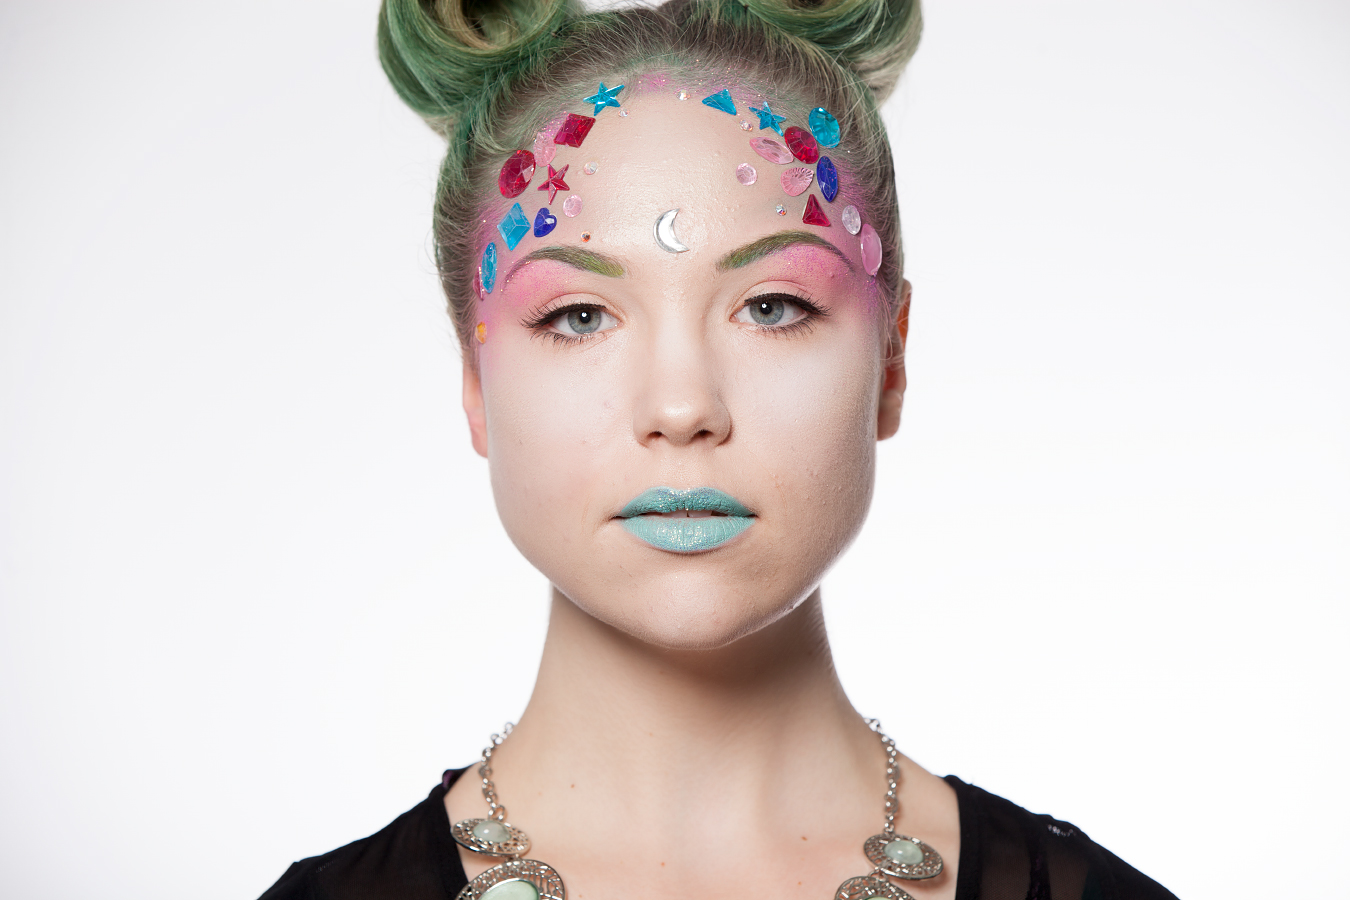 Pink Complimentary Color 10 Simple Steps To A Stylish Halloween Part 2 Aveda